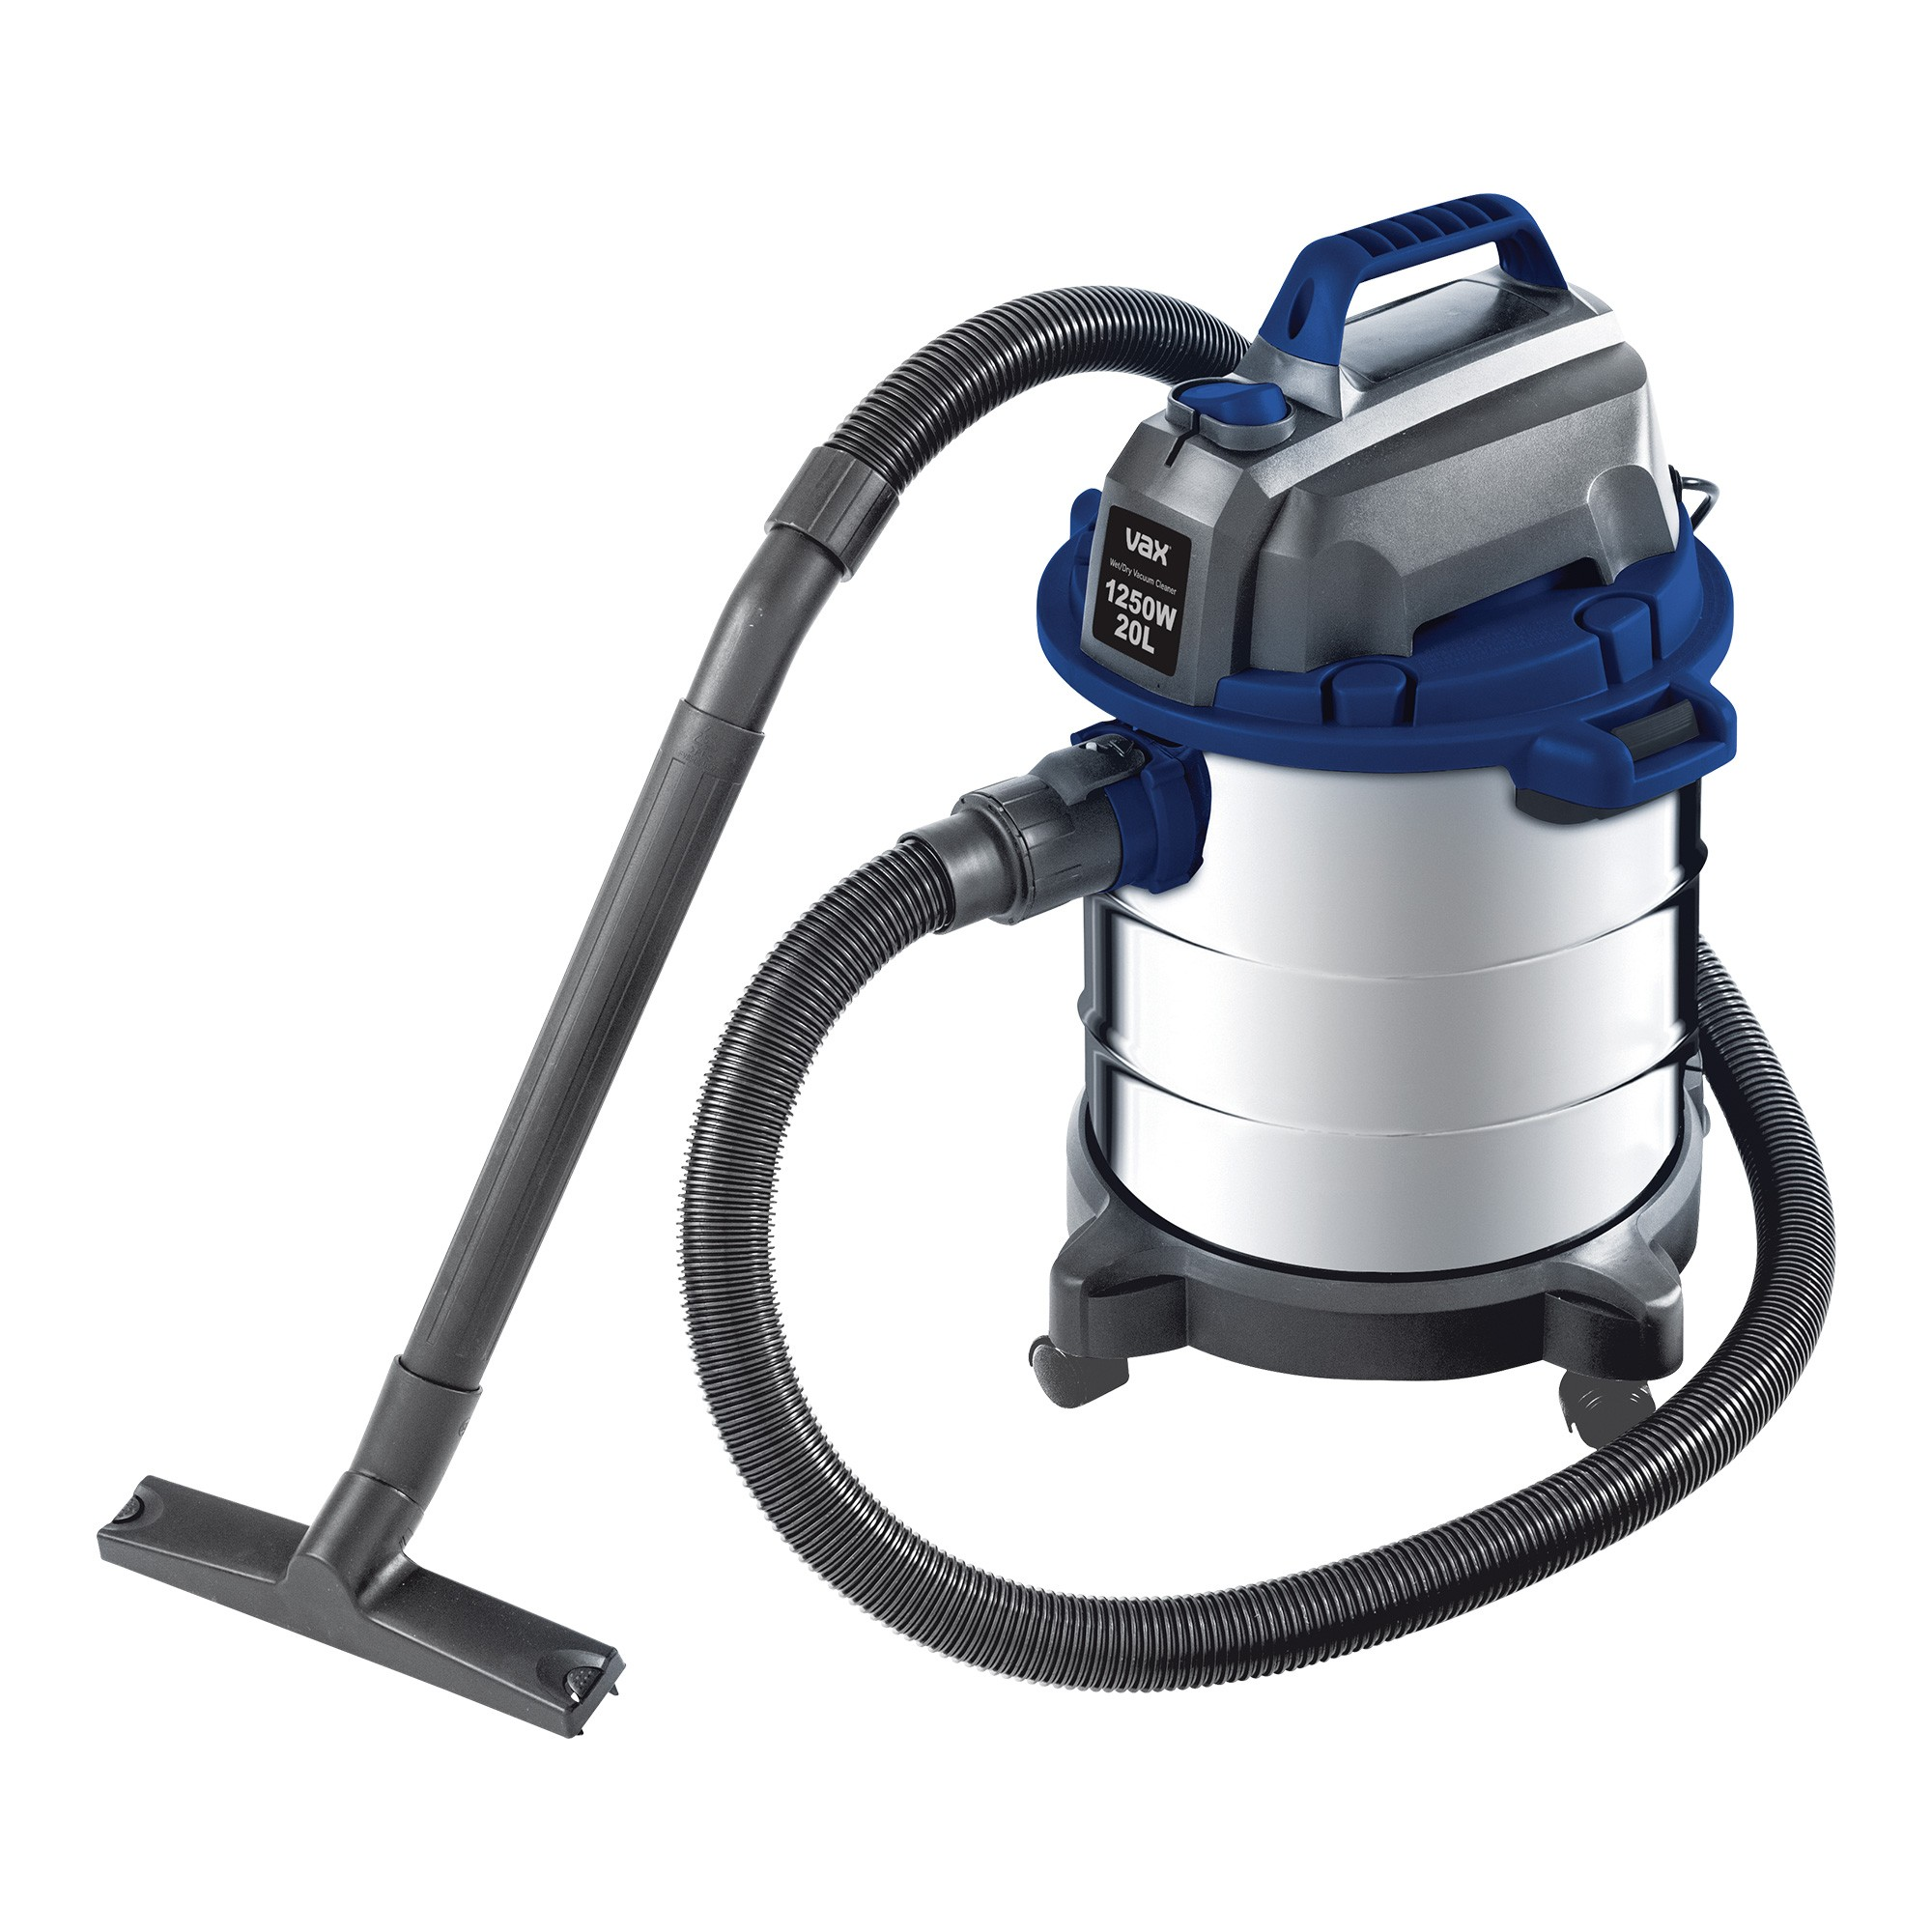 Vax Wet and Dry Vacuum Cleaner (Blue)